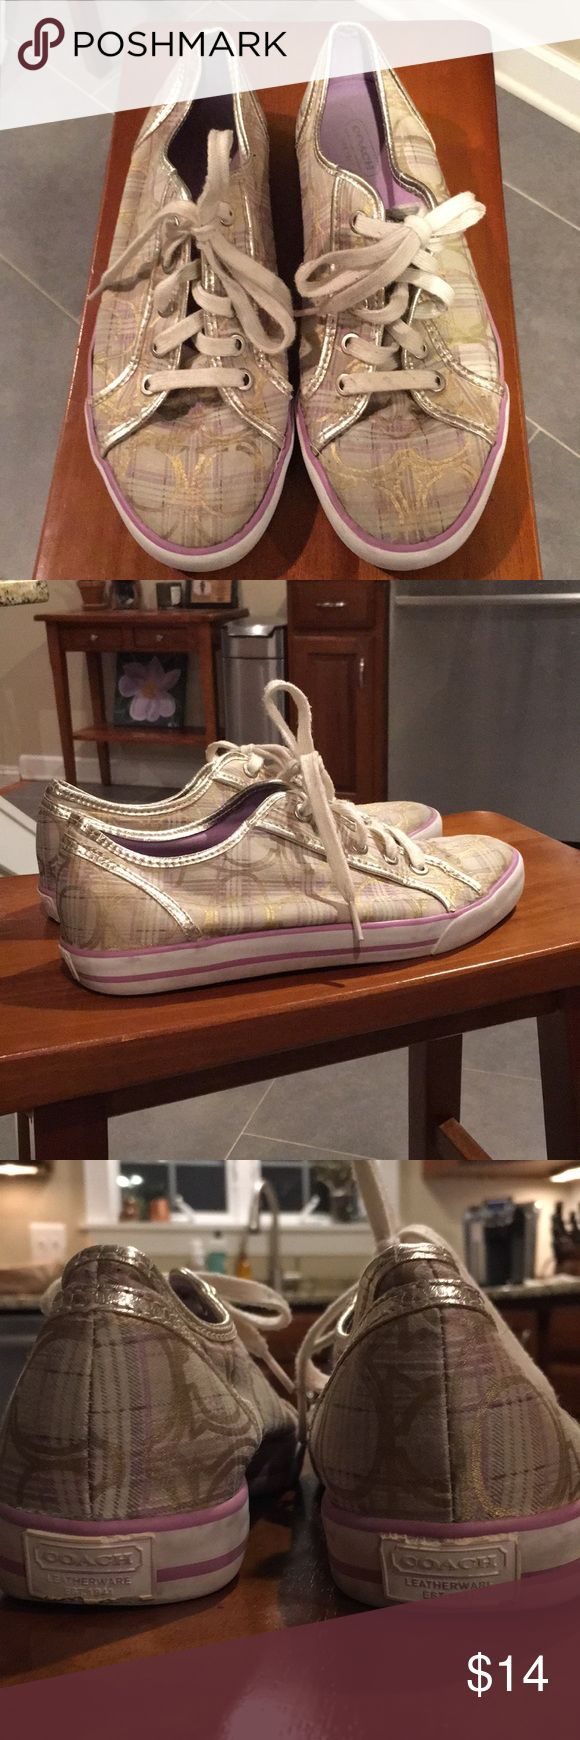 Coach tennis shoes Coach 'Dee' tennis shoes. Canvas beige with gold piping and lavender interior and strips along soles. Good used condition👍 Coach Shoes Sneakers